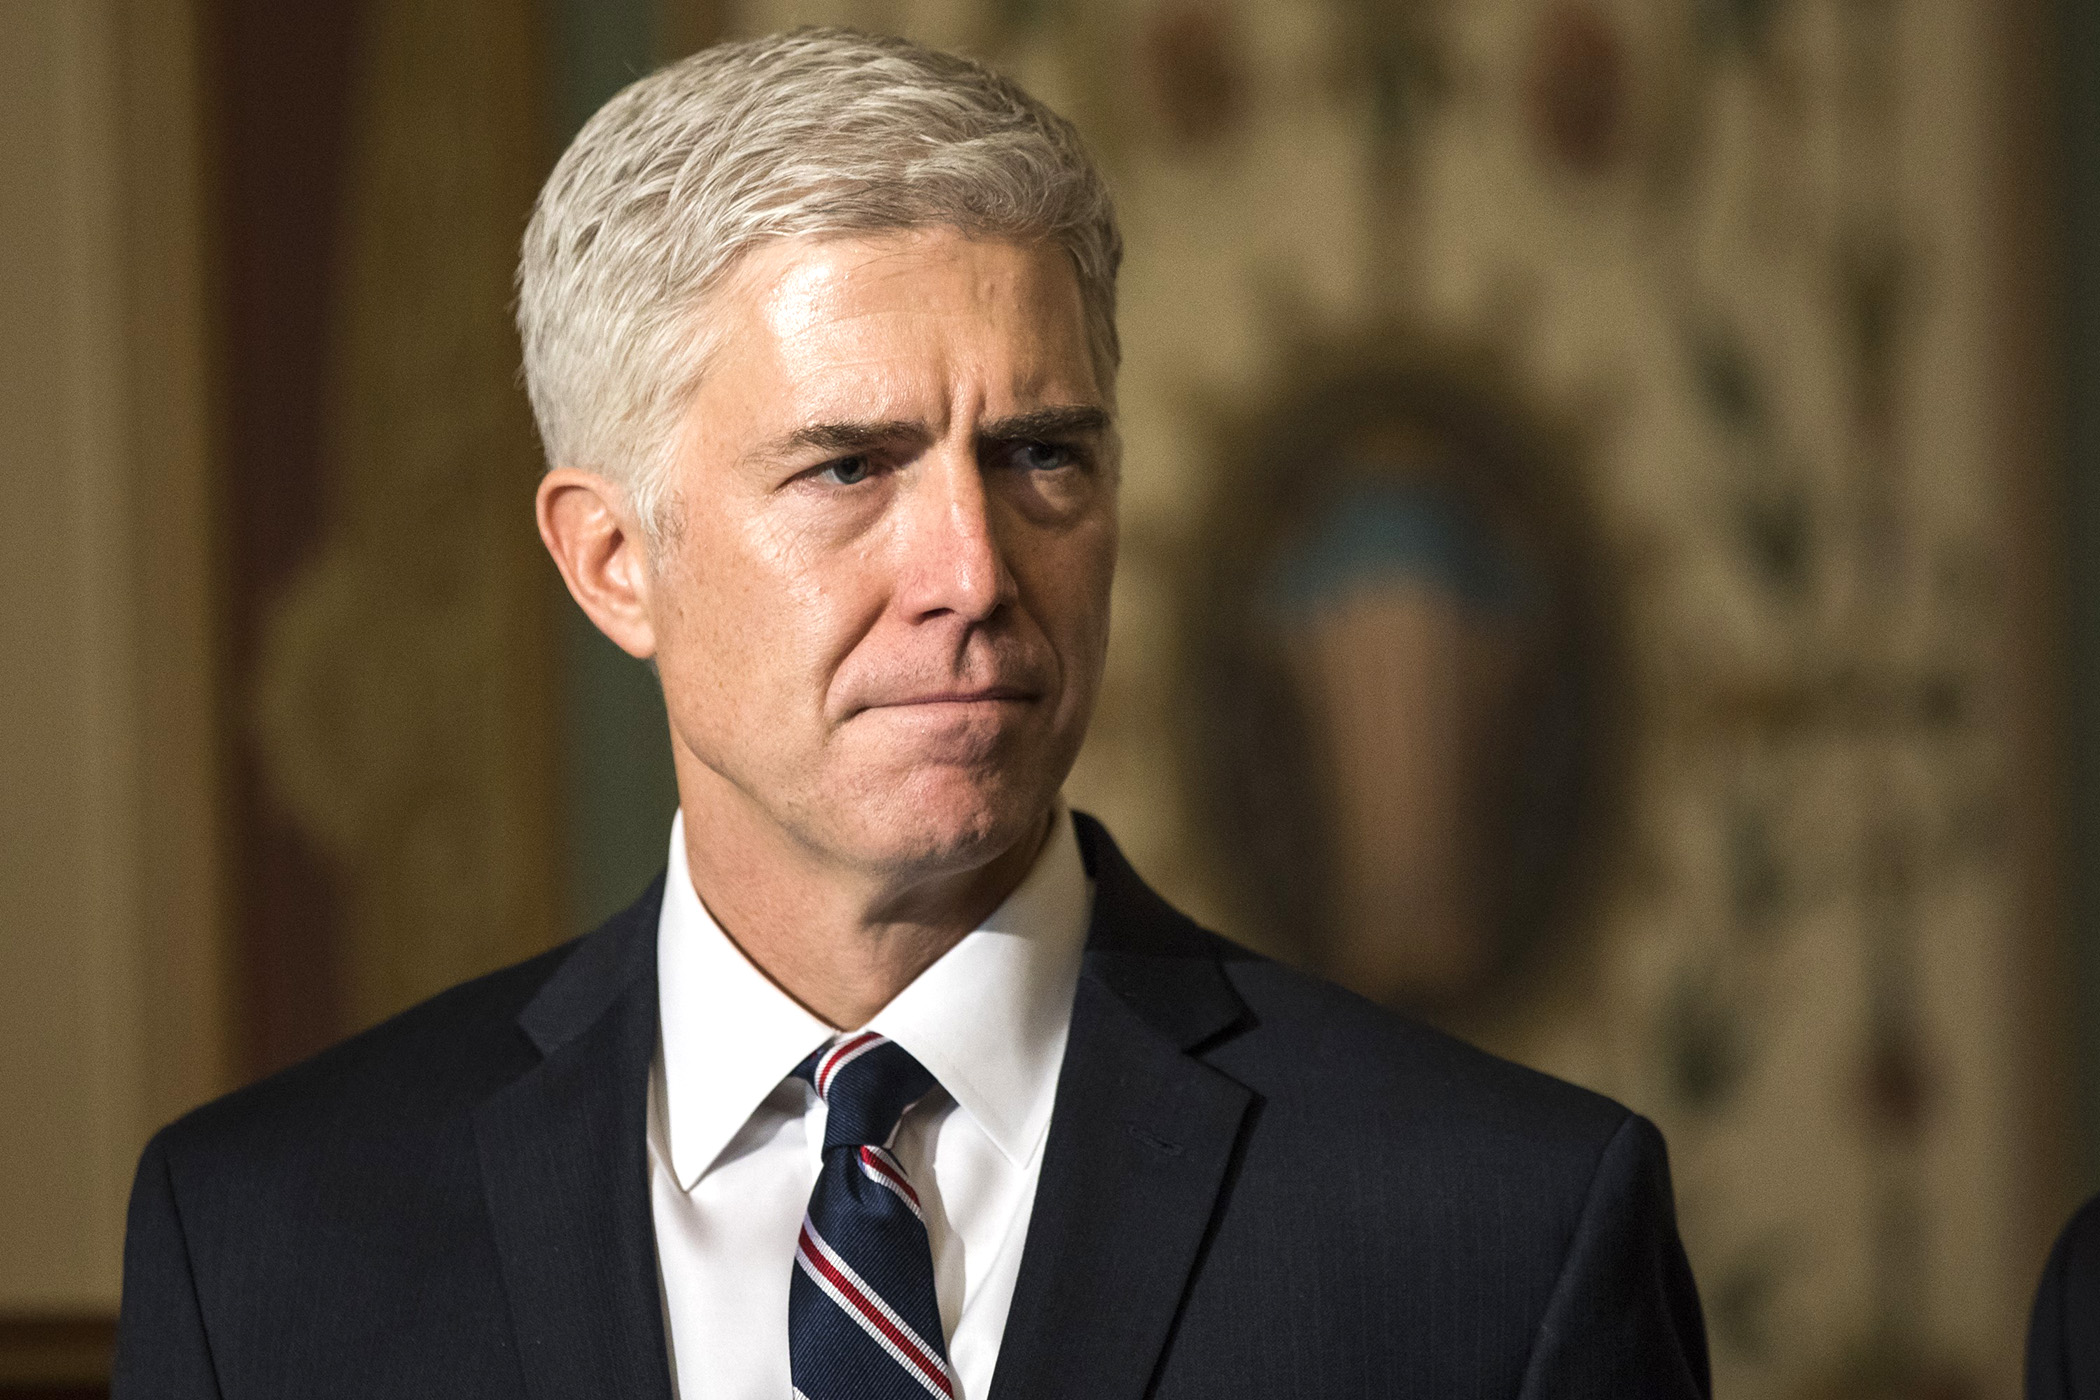 Judge Neil Gorsuch, President Trumps nominee for the U.S. Supreme Court, meets with lawmakers at the U.S. Capitol in Washington, USA on February 1, 2017.